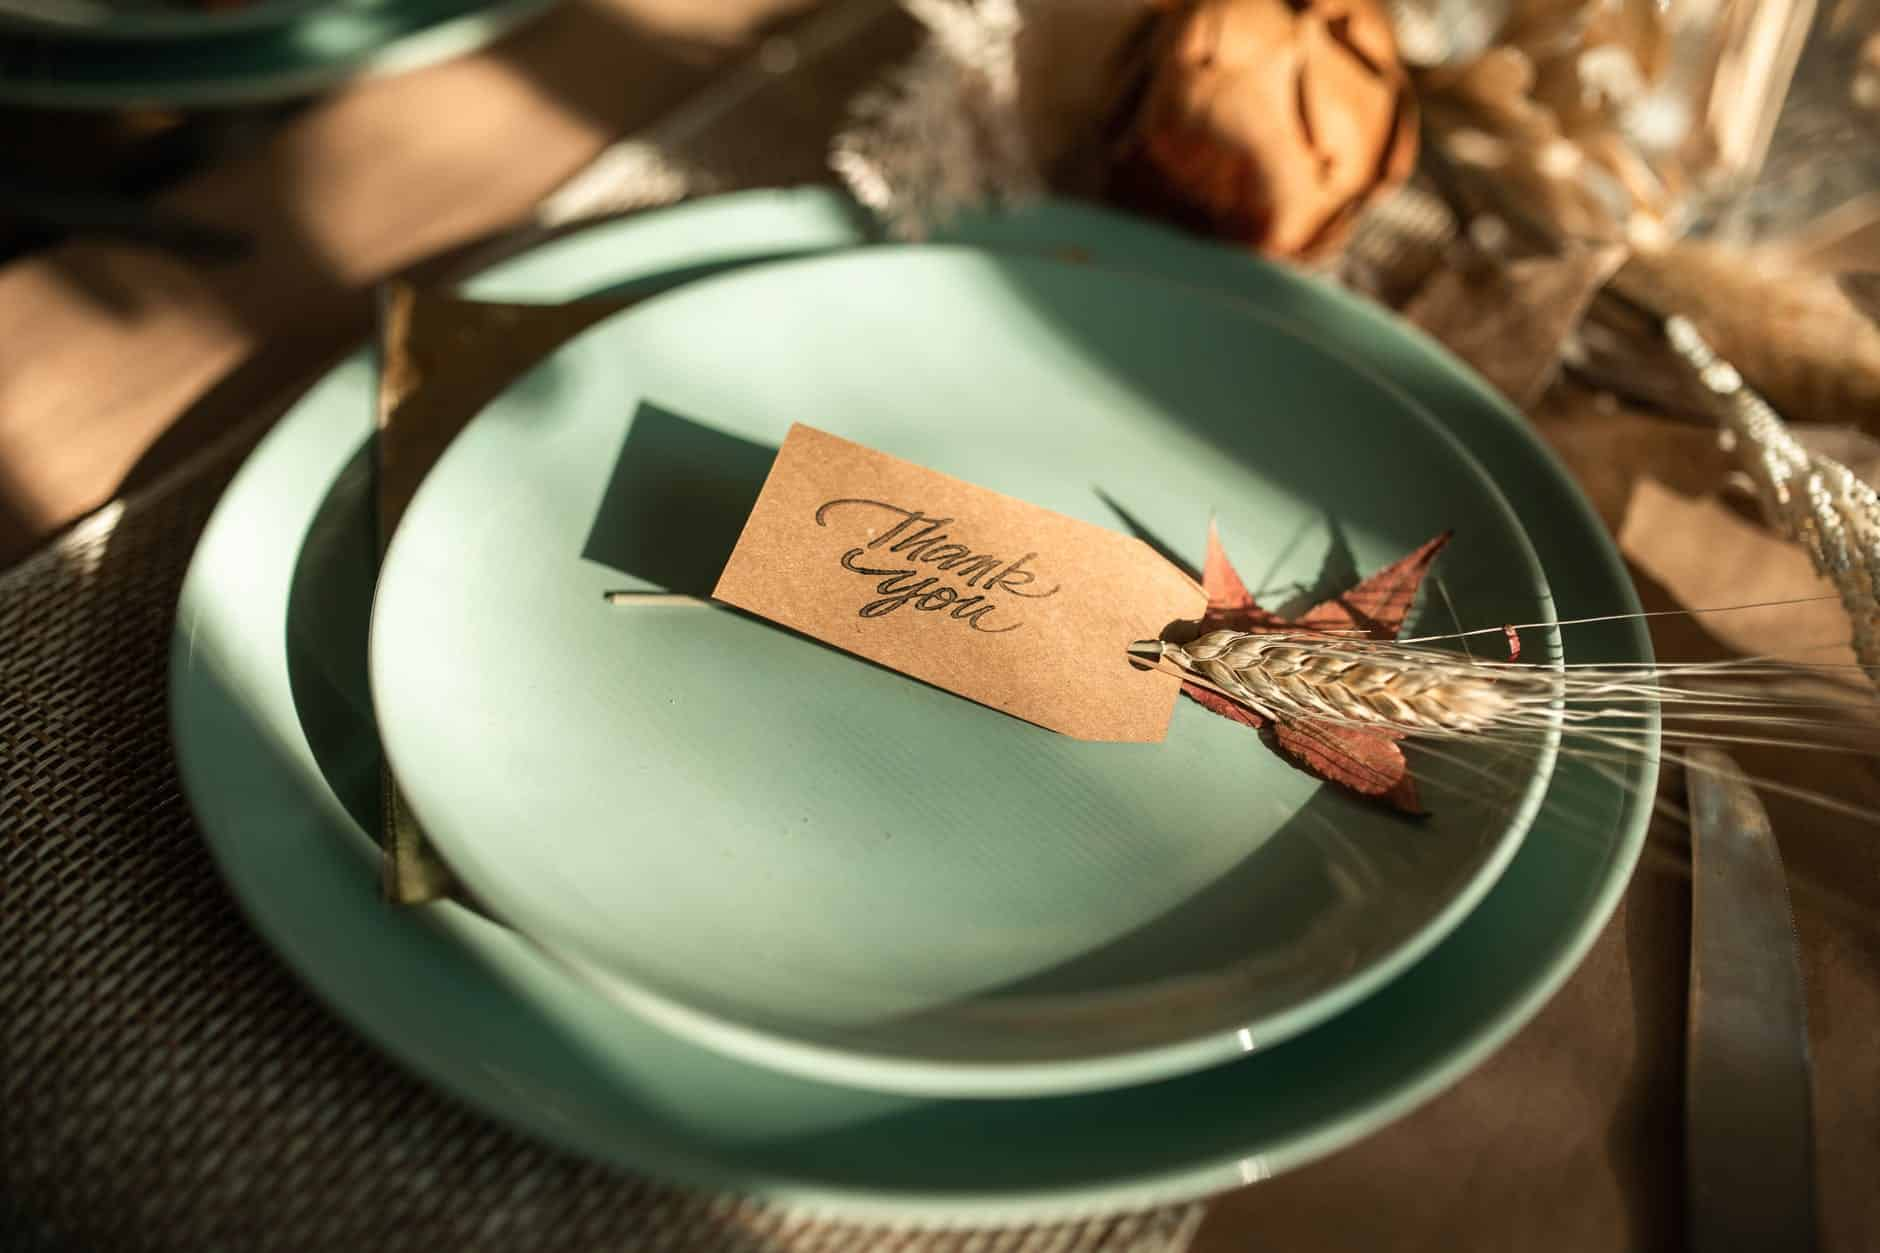 white and brown card on green ceramic round plate Victim Mentality